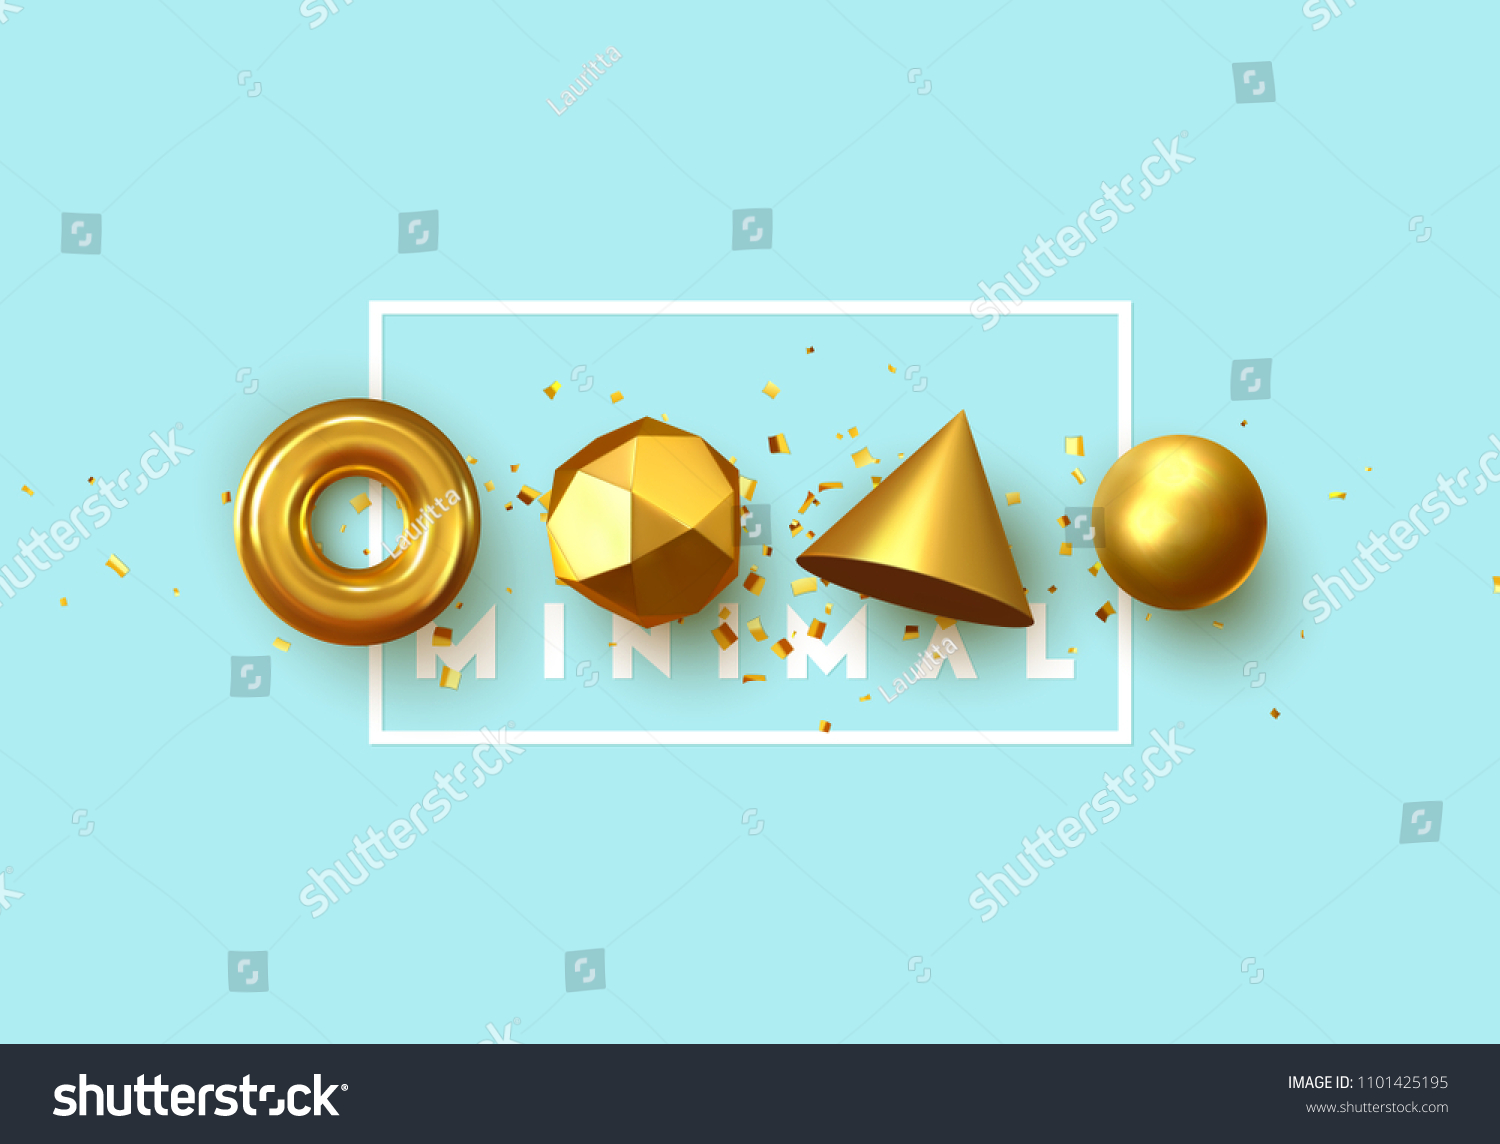 Abstract geometric background. 3D Shapes, golden color spheres, torus, cones. Art Trendy Minimal Design #1101425195